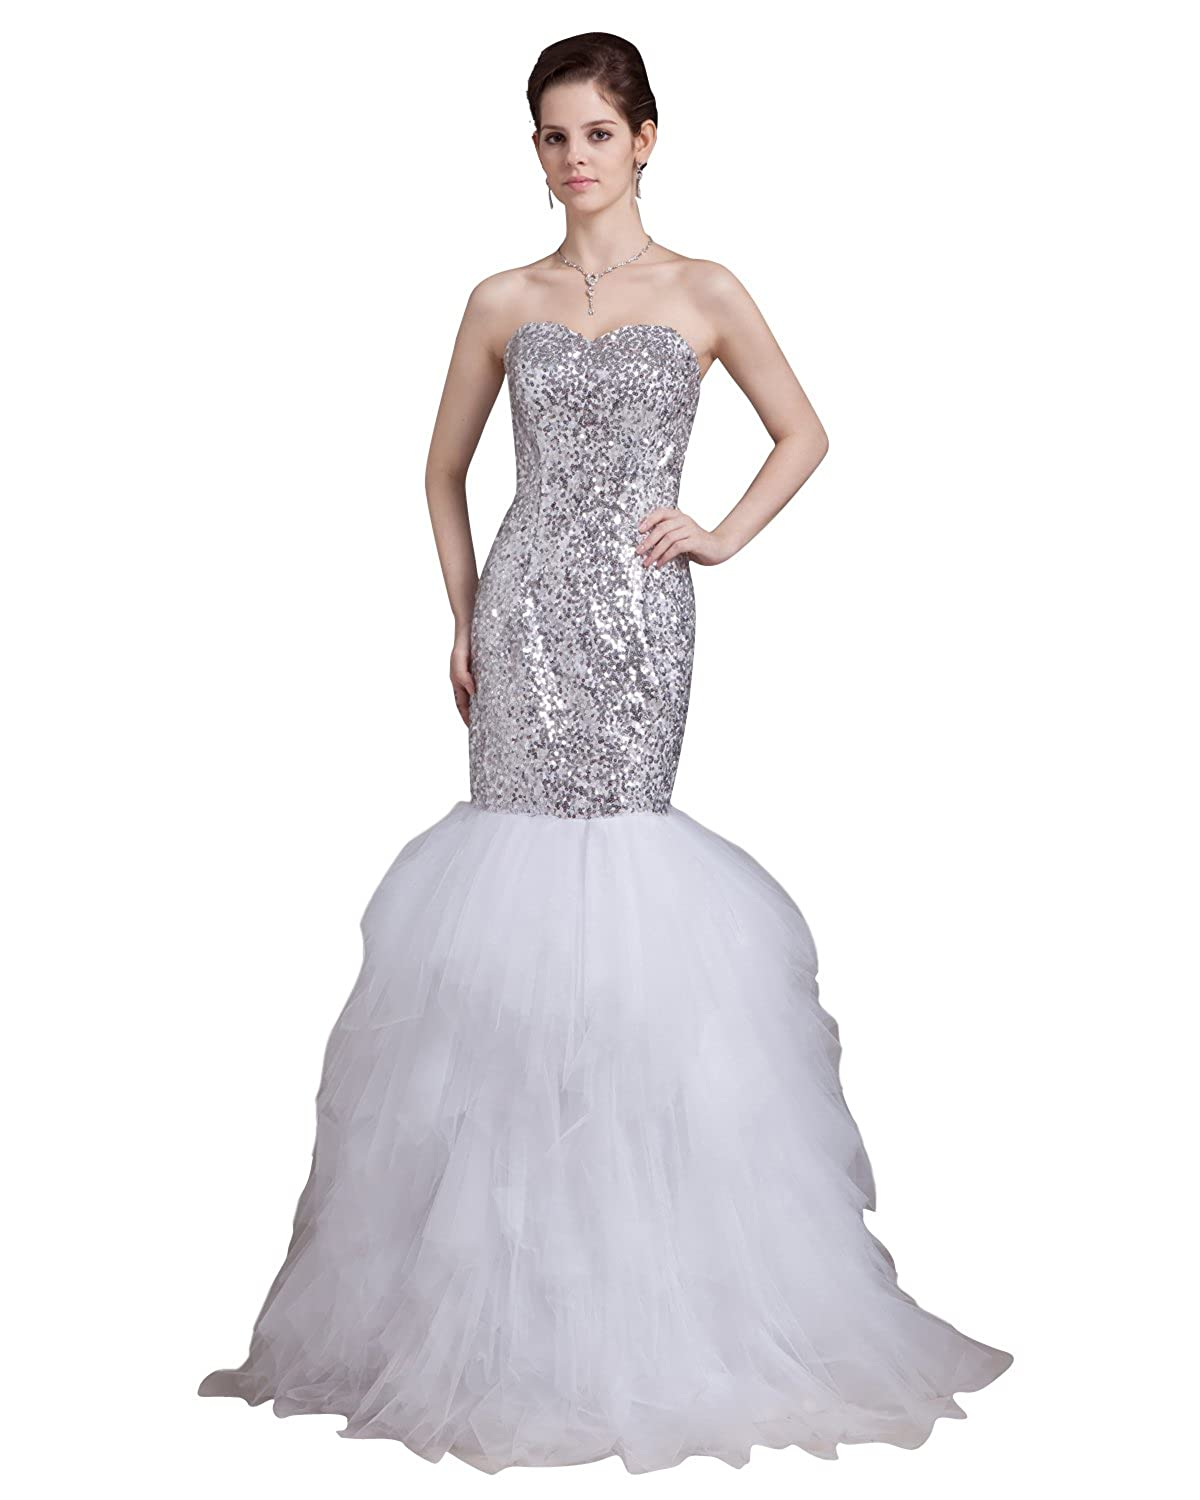 db37fcae91 Vampal Silver And White Mermaid Sweetheart Sequin Bodice Prom Dress With  Ruffle  Amazon.ca  Clothing   Accessories